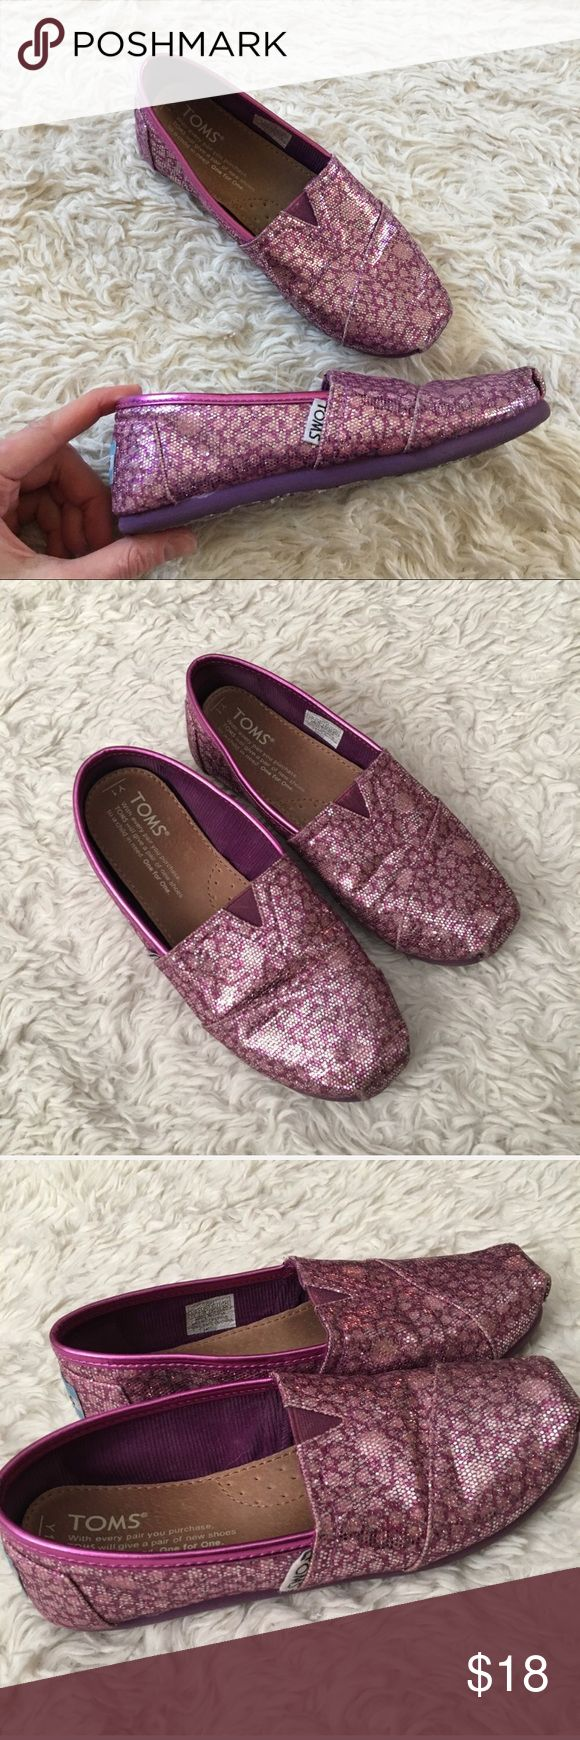 TOMS Girl's Fuchsia Glitter Sparkly Toms Pink/Purple Sparkly Glitter TOMS for girls. They are pre-loved, and the insert is a little loose--only when not on. Some minor wear as shown. ✨OFFERS WELCOME✨ Toms Shoes